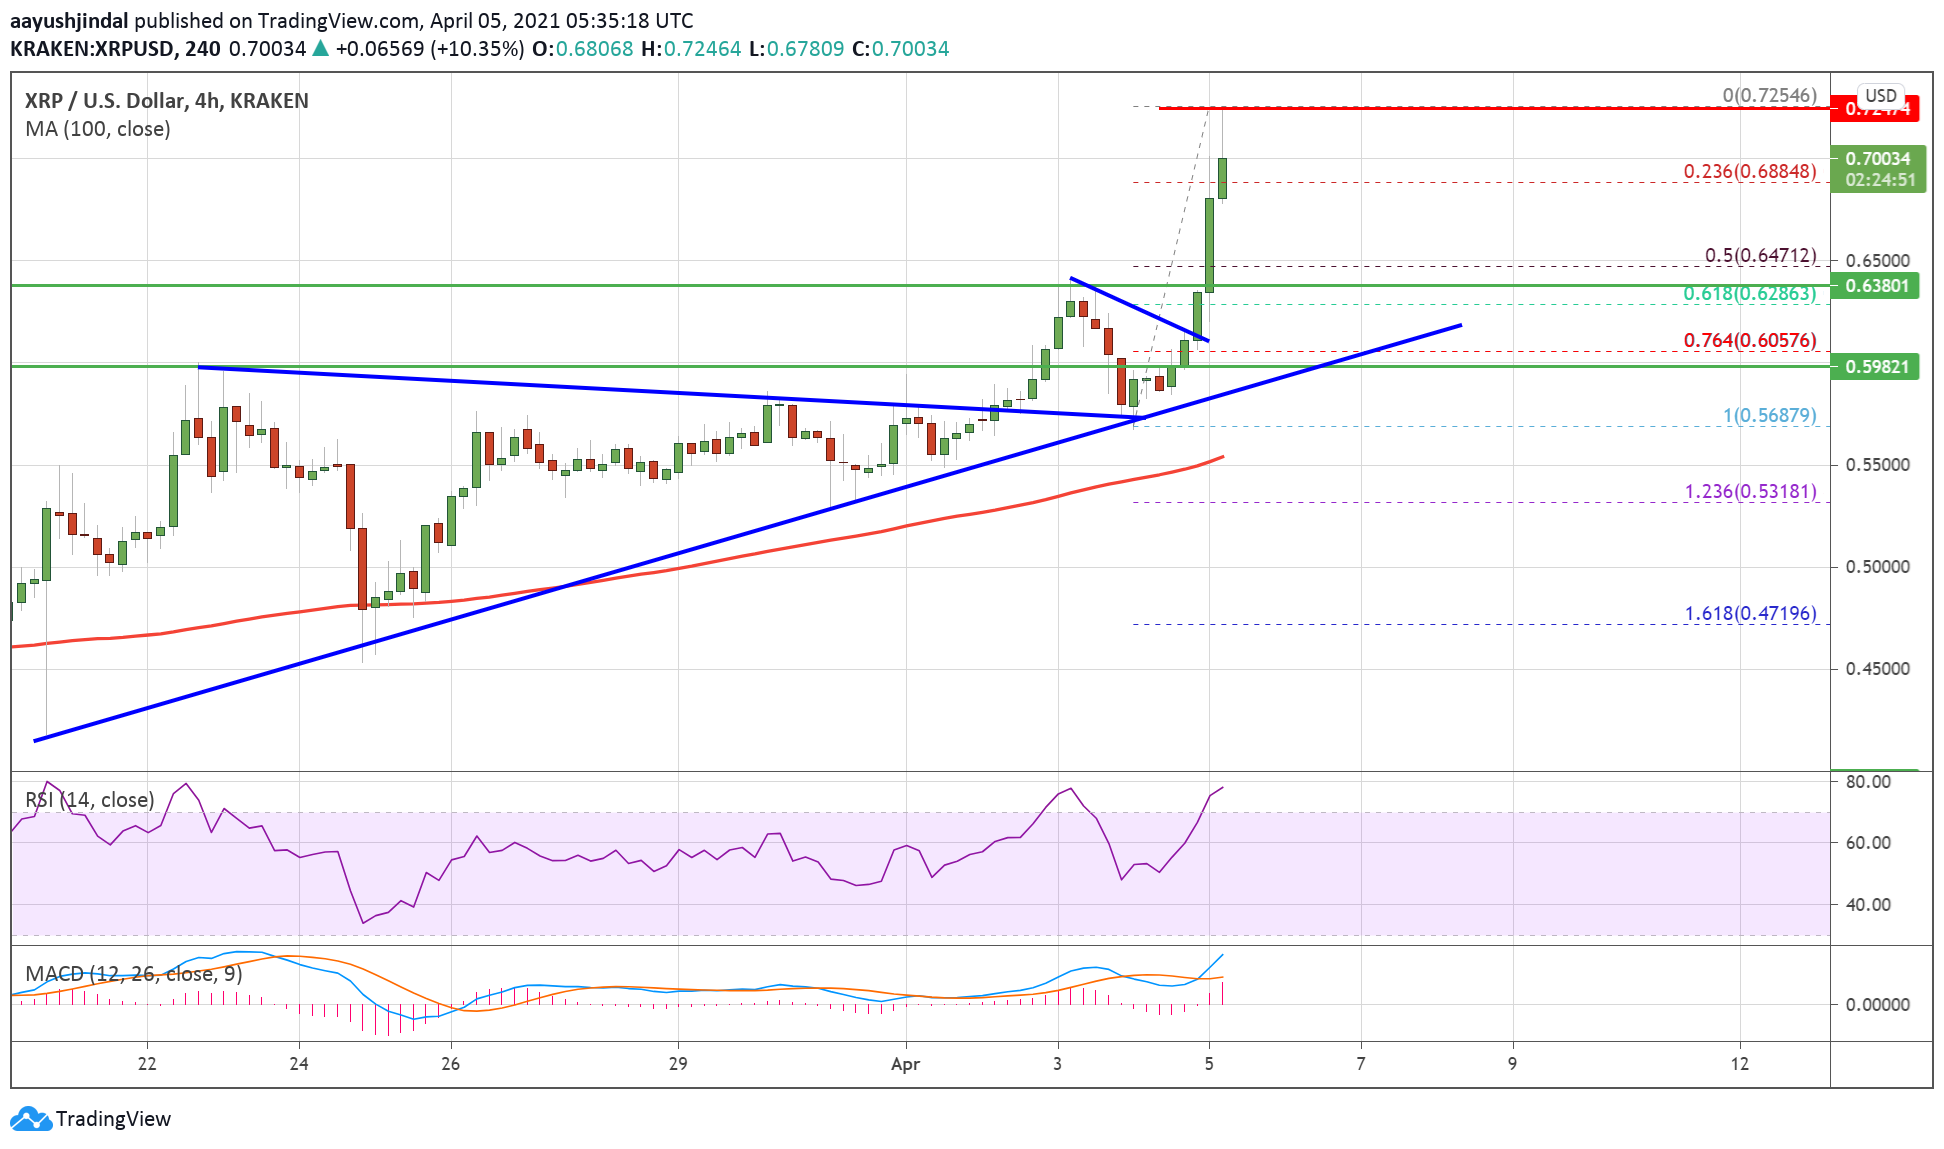 Charted: Ripple (XRP) Surges Above $0.70, Bulls Aim $0